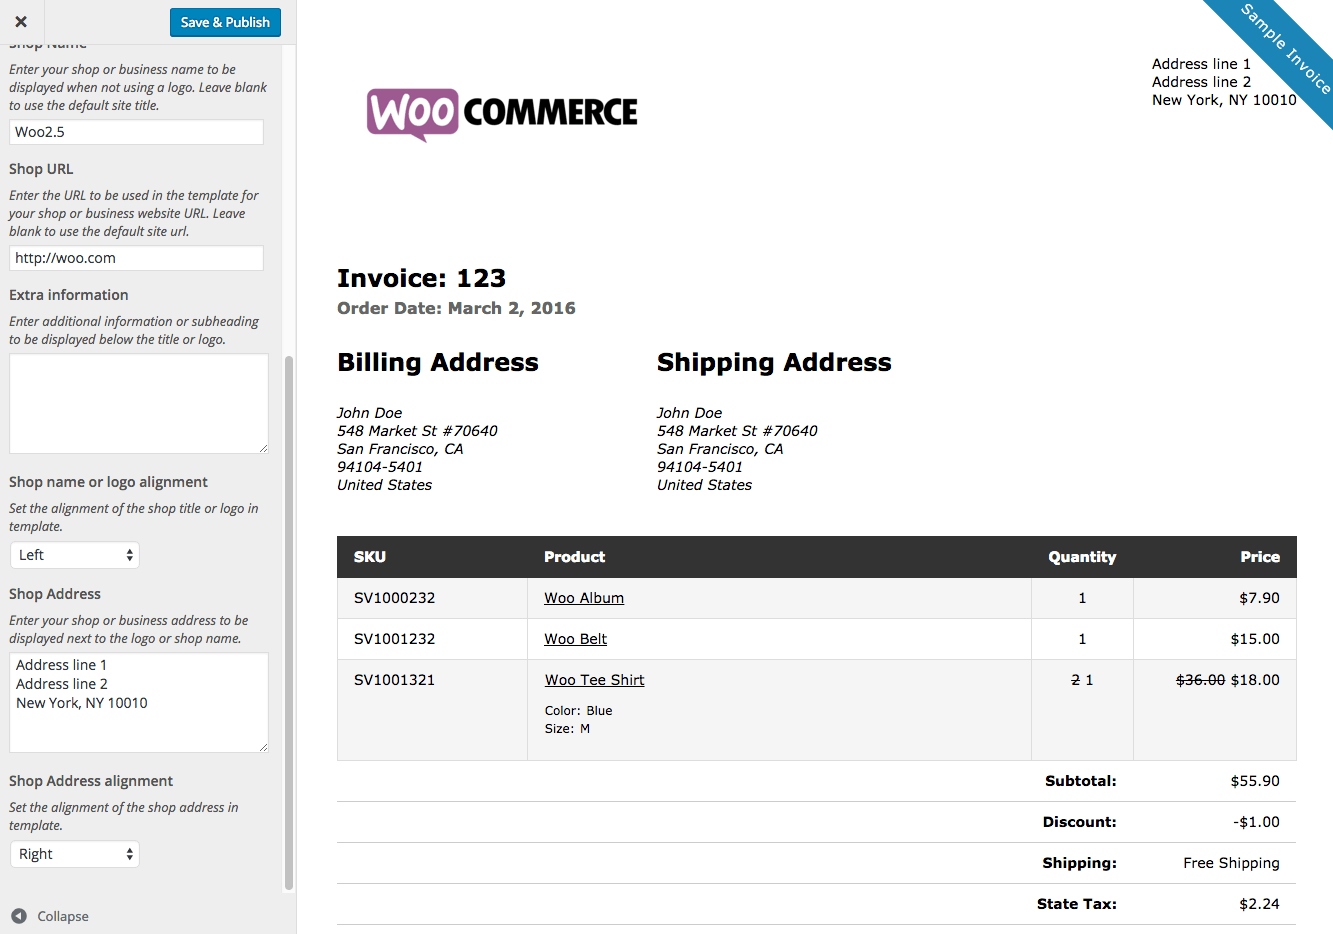 Carsforlessus  Fascinating Print Invoices Amp Packing Lists  Woocommerce With Excellent Woocommerce Print Invoices  Packing Lists Customizer With Adorable Paid The Invoice Also Free Downloadable Invoice Template In Addition Written Invoice Template And Silverado Invoice Price As Well As Nota Invoice Additionally Transporter Invoice Format From Woocommercecom With Carsforlessus  Excellent Print Invoices Amp Packing Lists  Woocommerce With Adorable Woocommerce Print Invoices  Packing Lists Customizer And Fascinating Paid The Invoice Also Free Downloadable Invoice Template In Addition Written Invoice Template From Woocommercecom